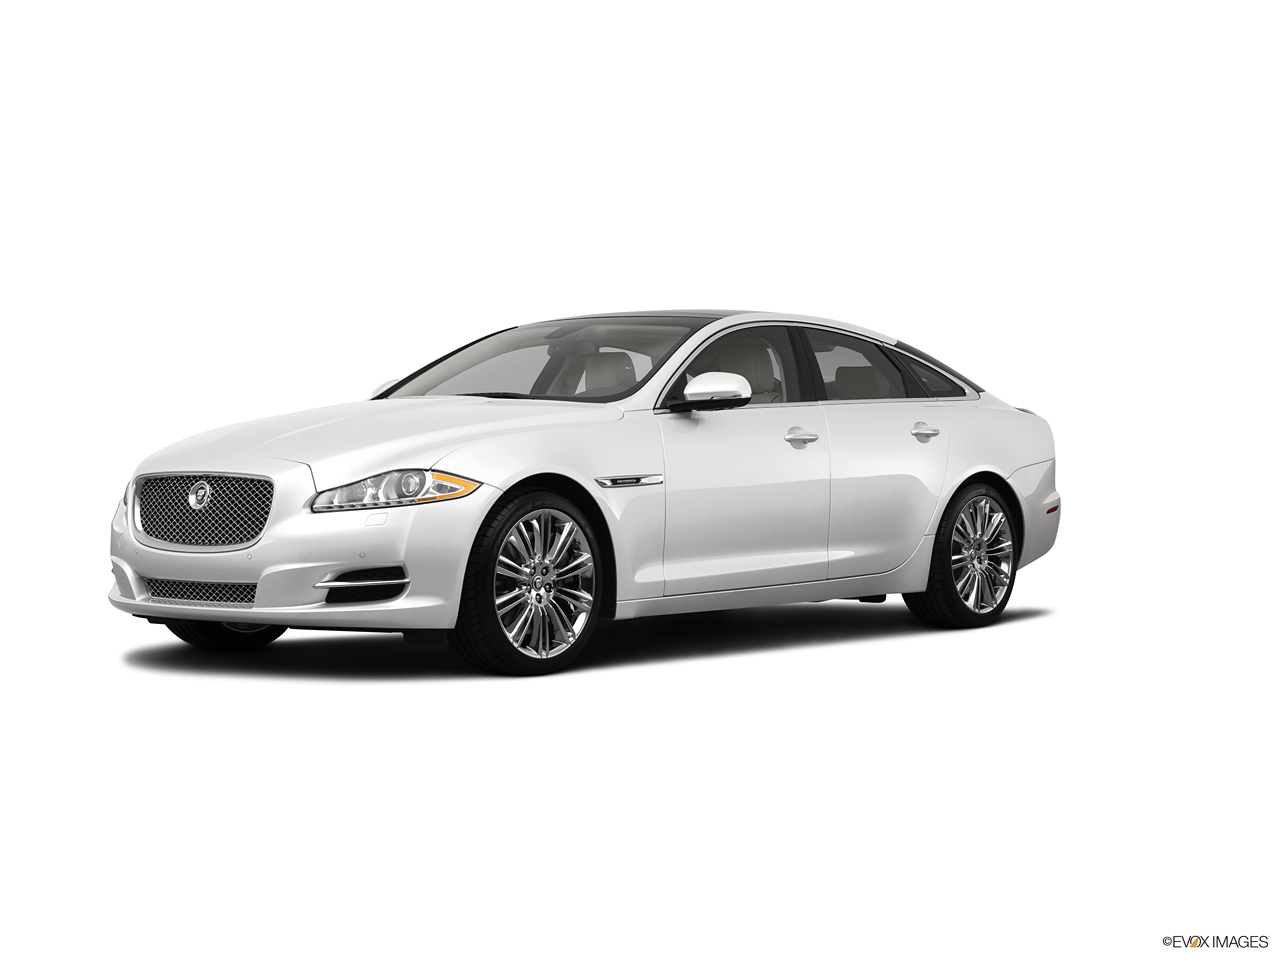 small resolution of jaguar service by top rated mechanics at the convenience of your home or office